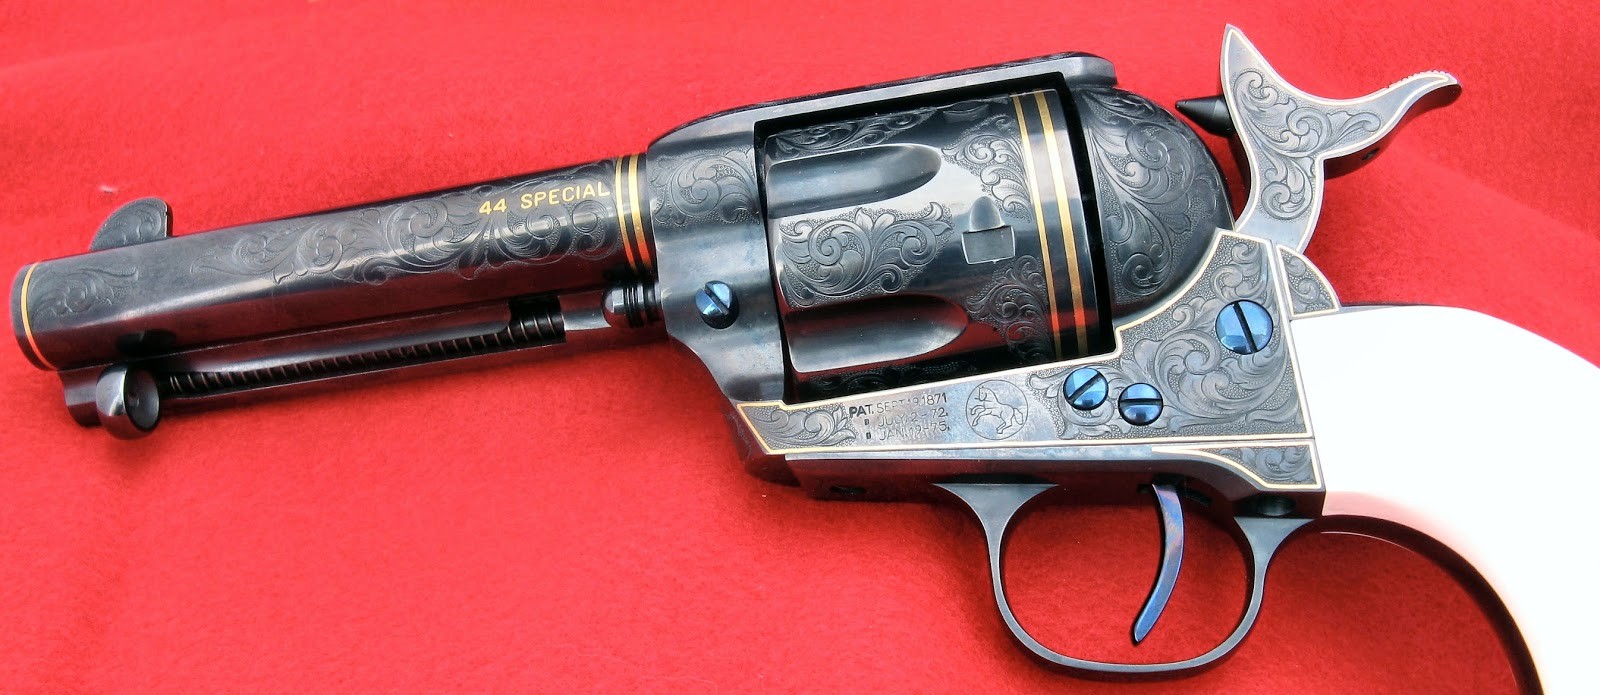 The Colt Single Action Army Revolver Below Has Cylinder Pin Trigger And Screws Done In Nitre Blue Click On Picture For A Larger Version